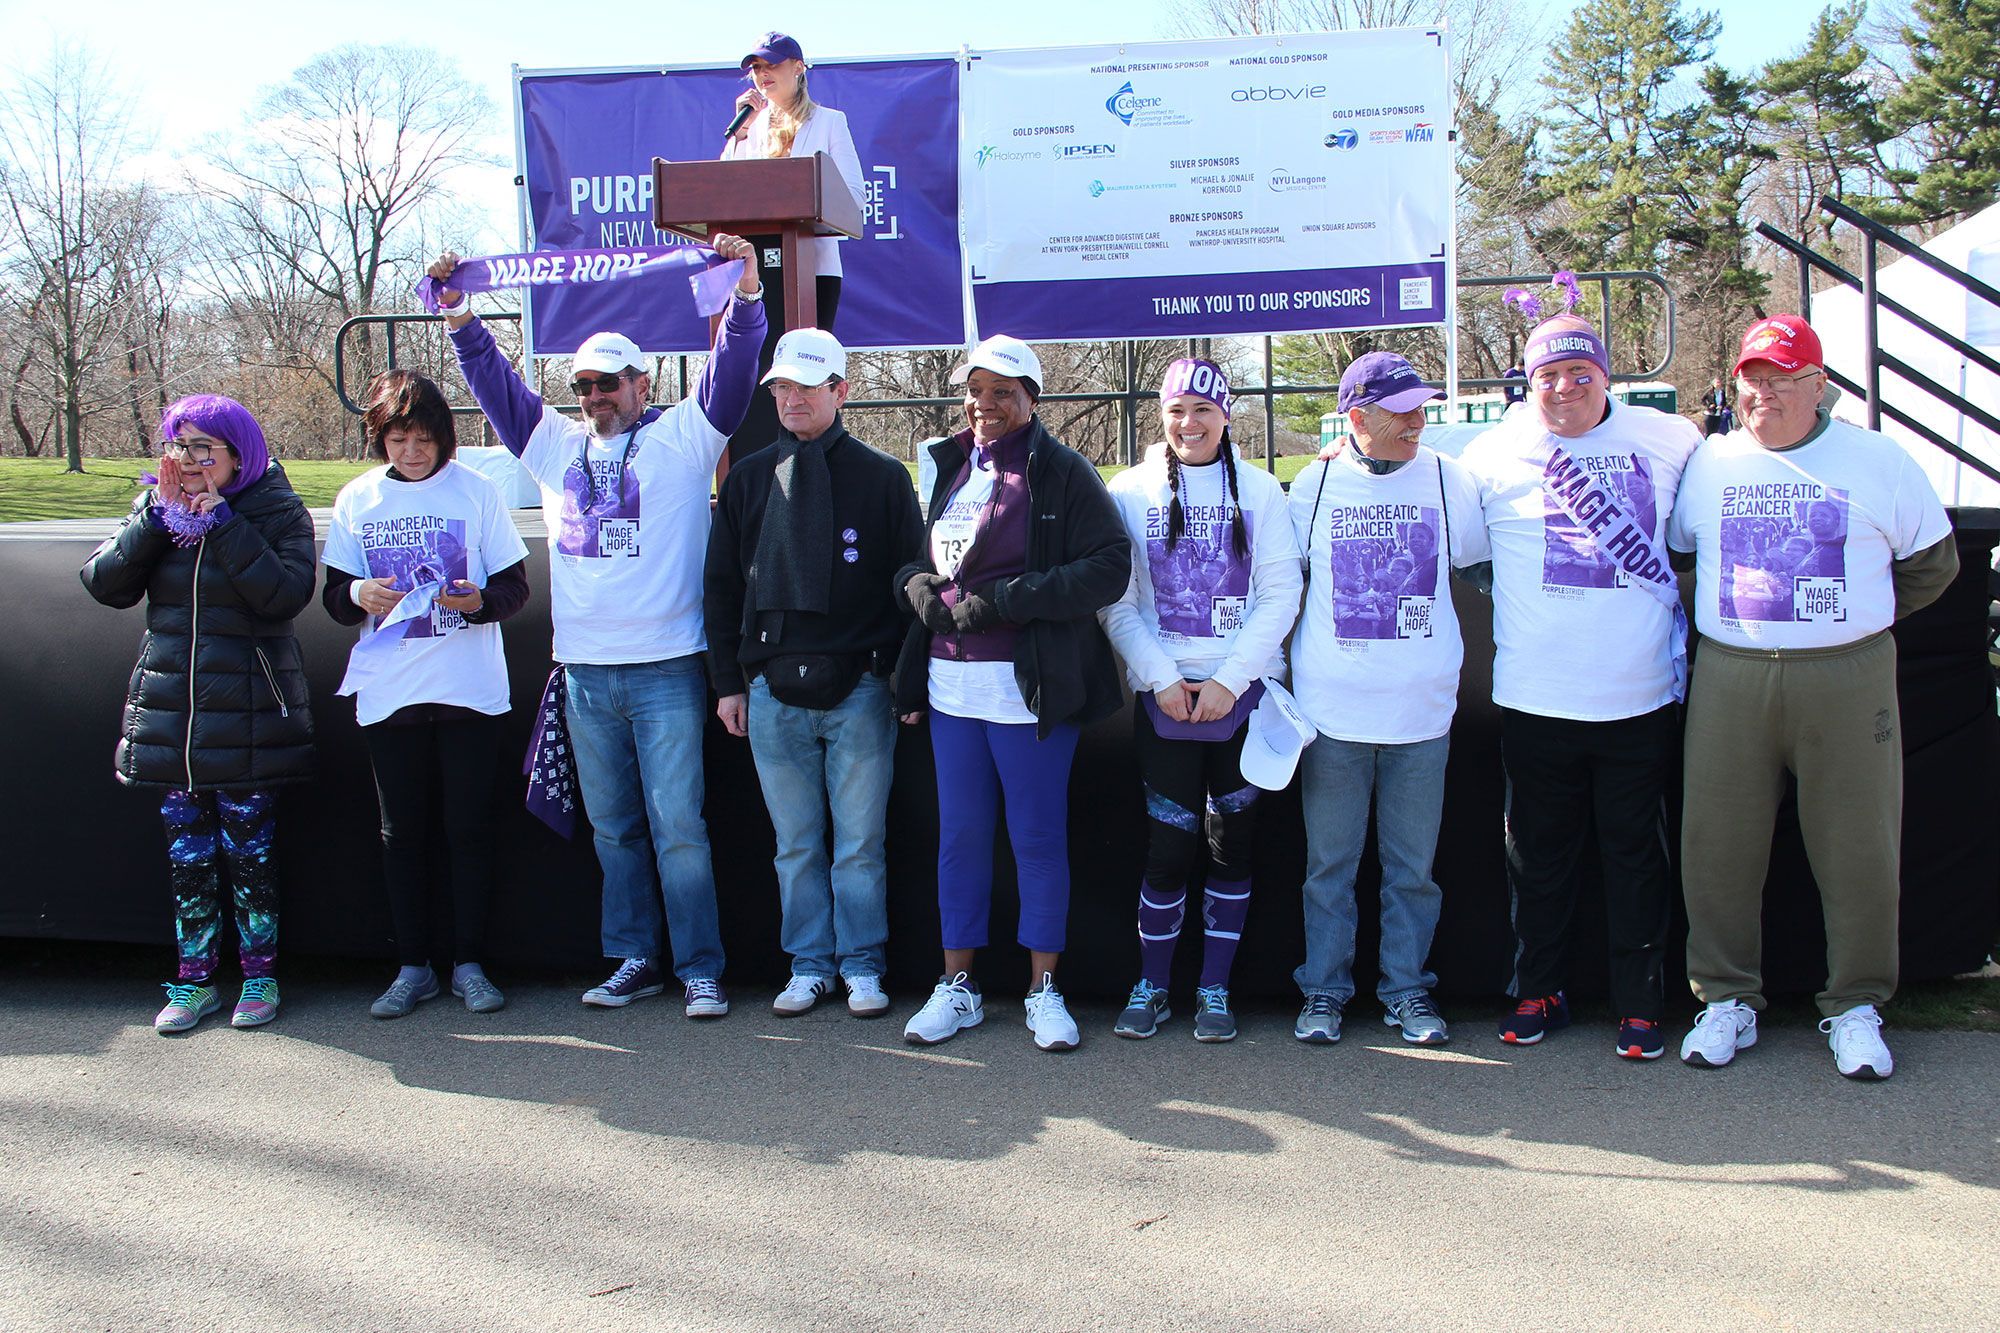 Pancreatic-Cancer-Action-Network1